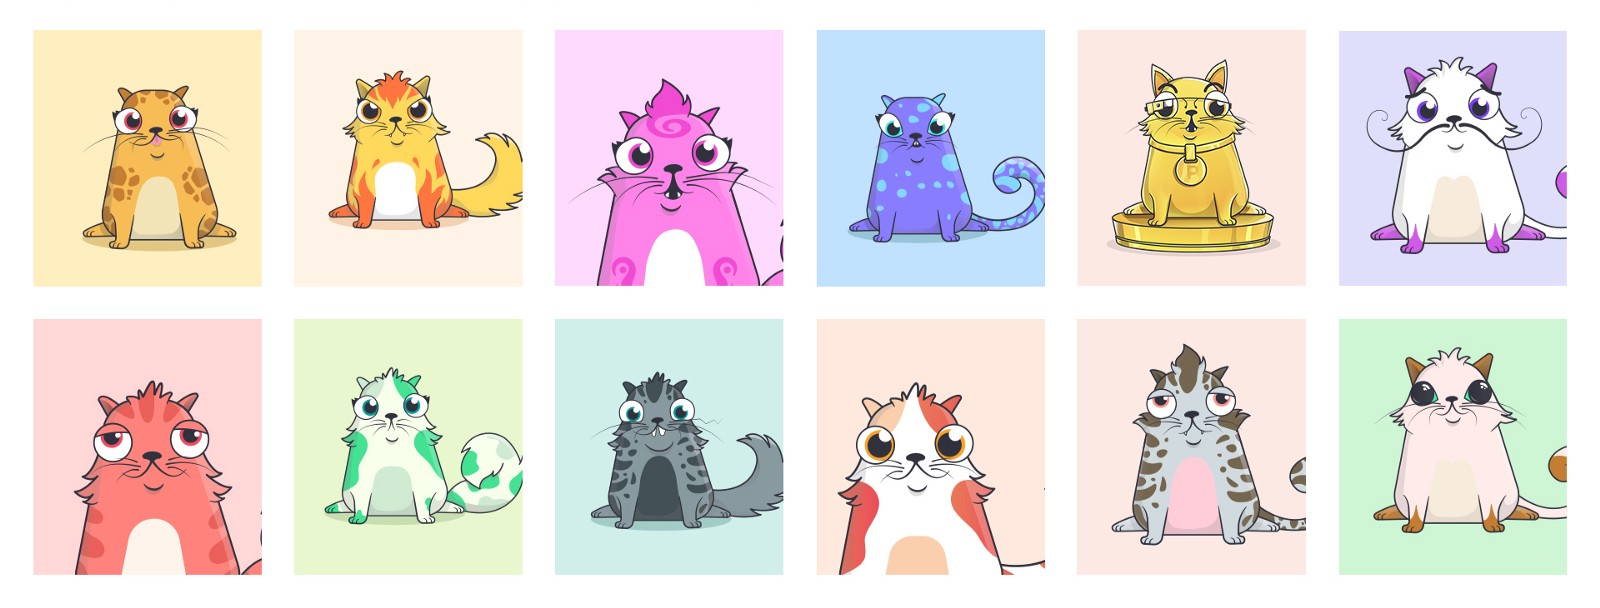 Image result for cryptokitties etherscan